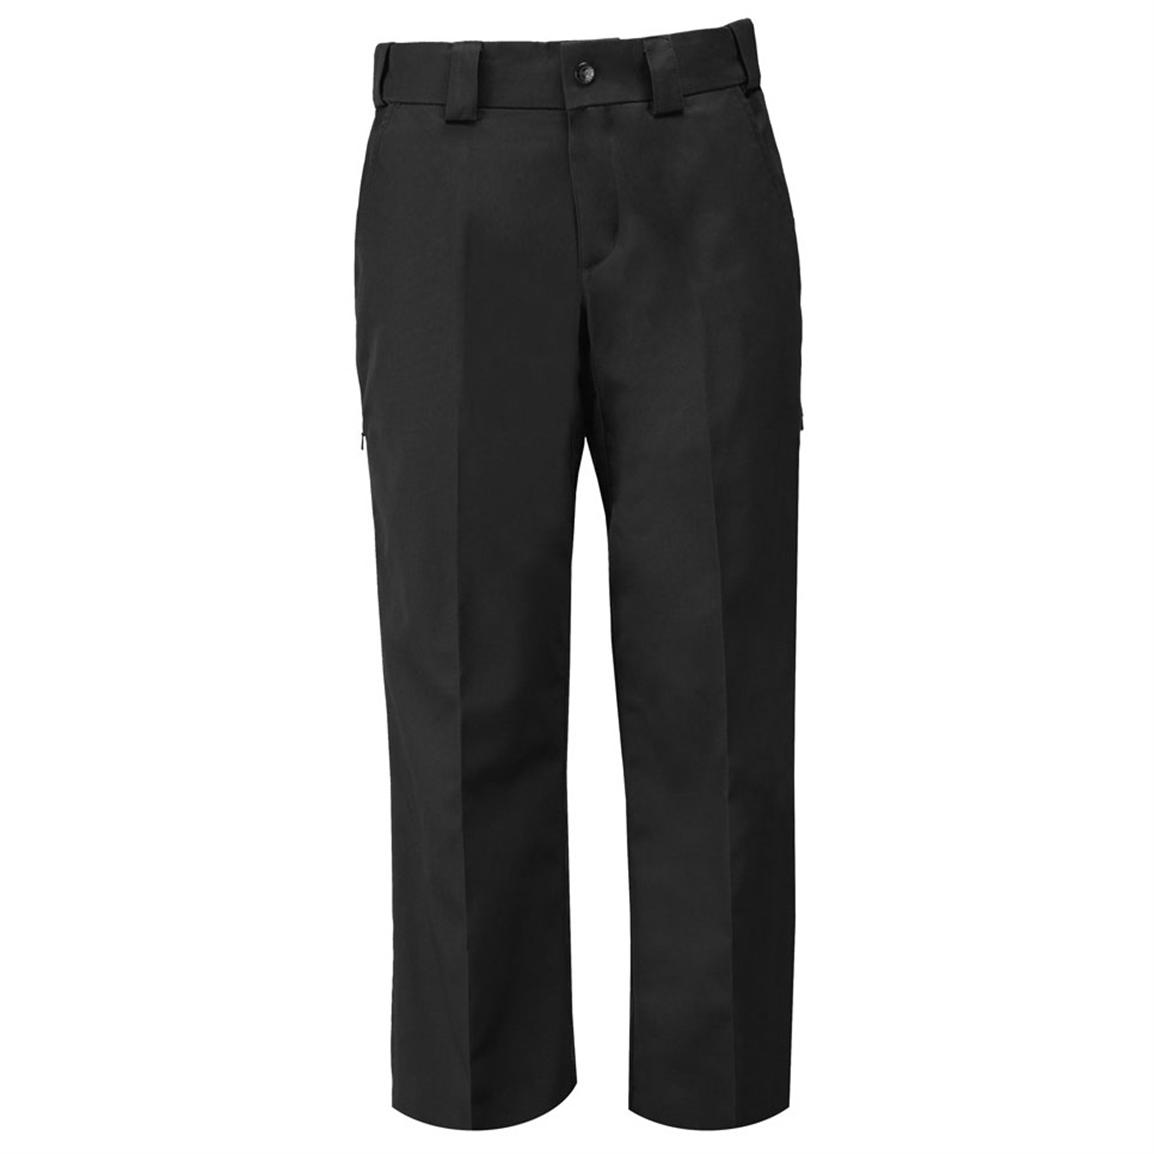 Women's 5.11 Tactical® PDU Class A Twill Pants, Black